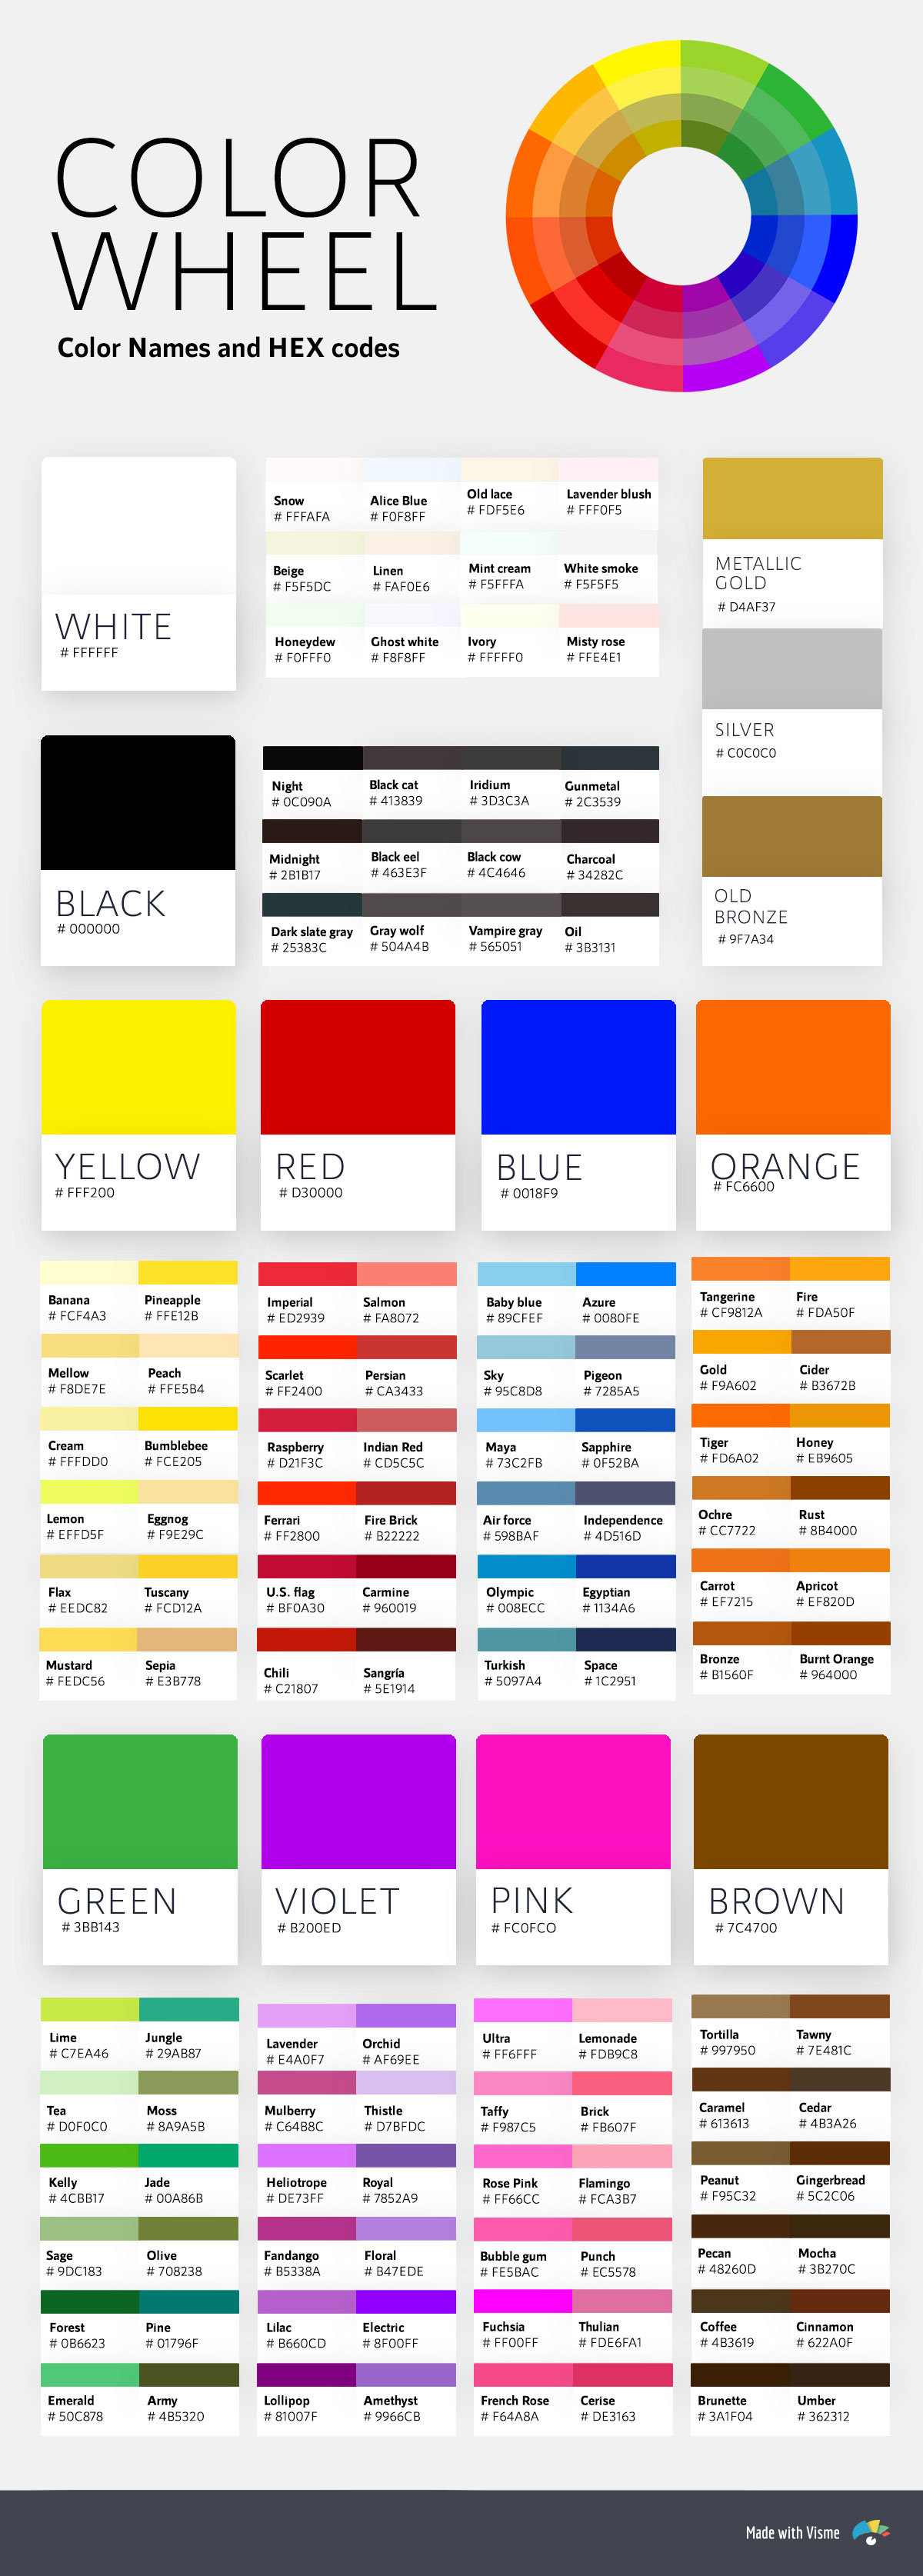 color psychology in marketing - color names hex codes chart infographic